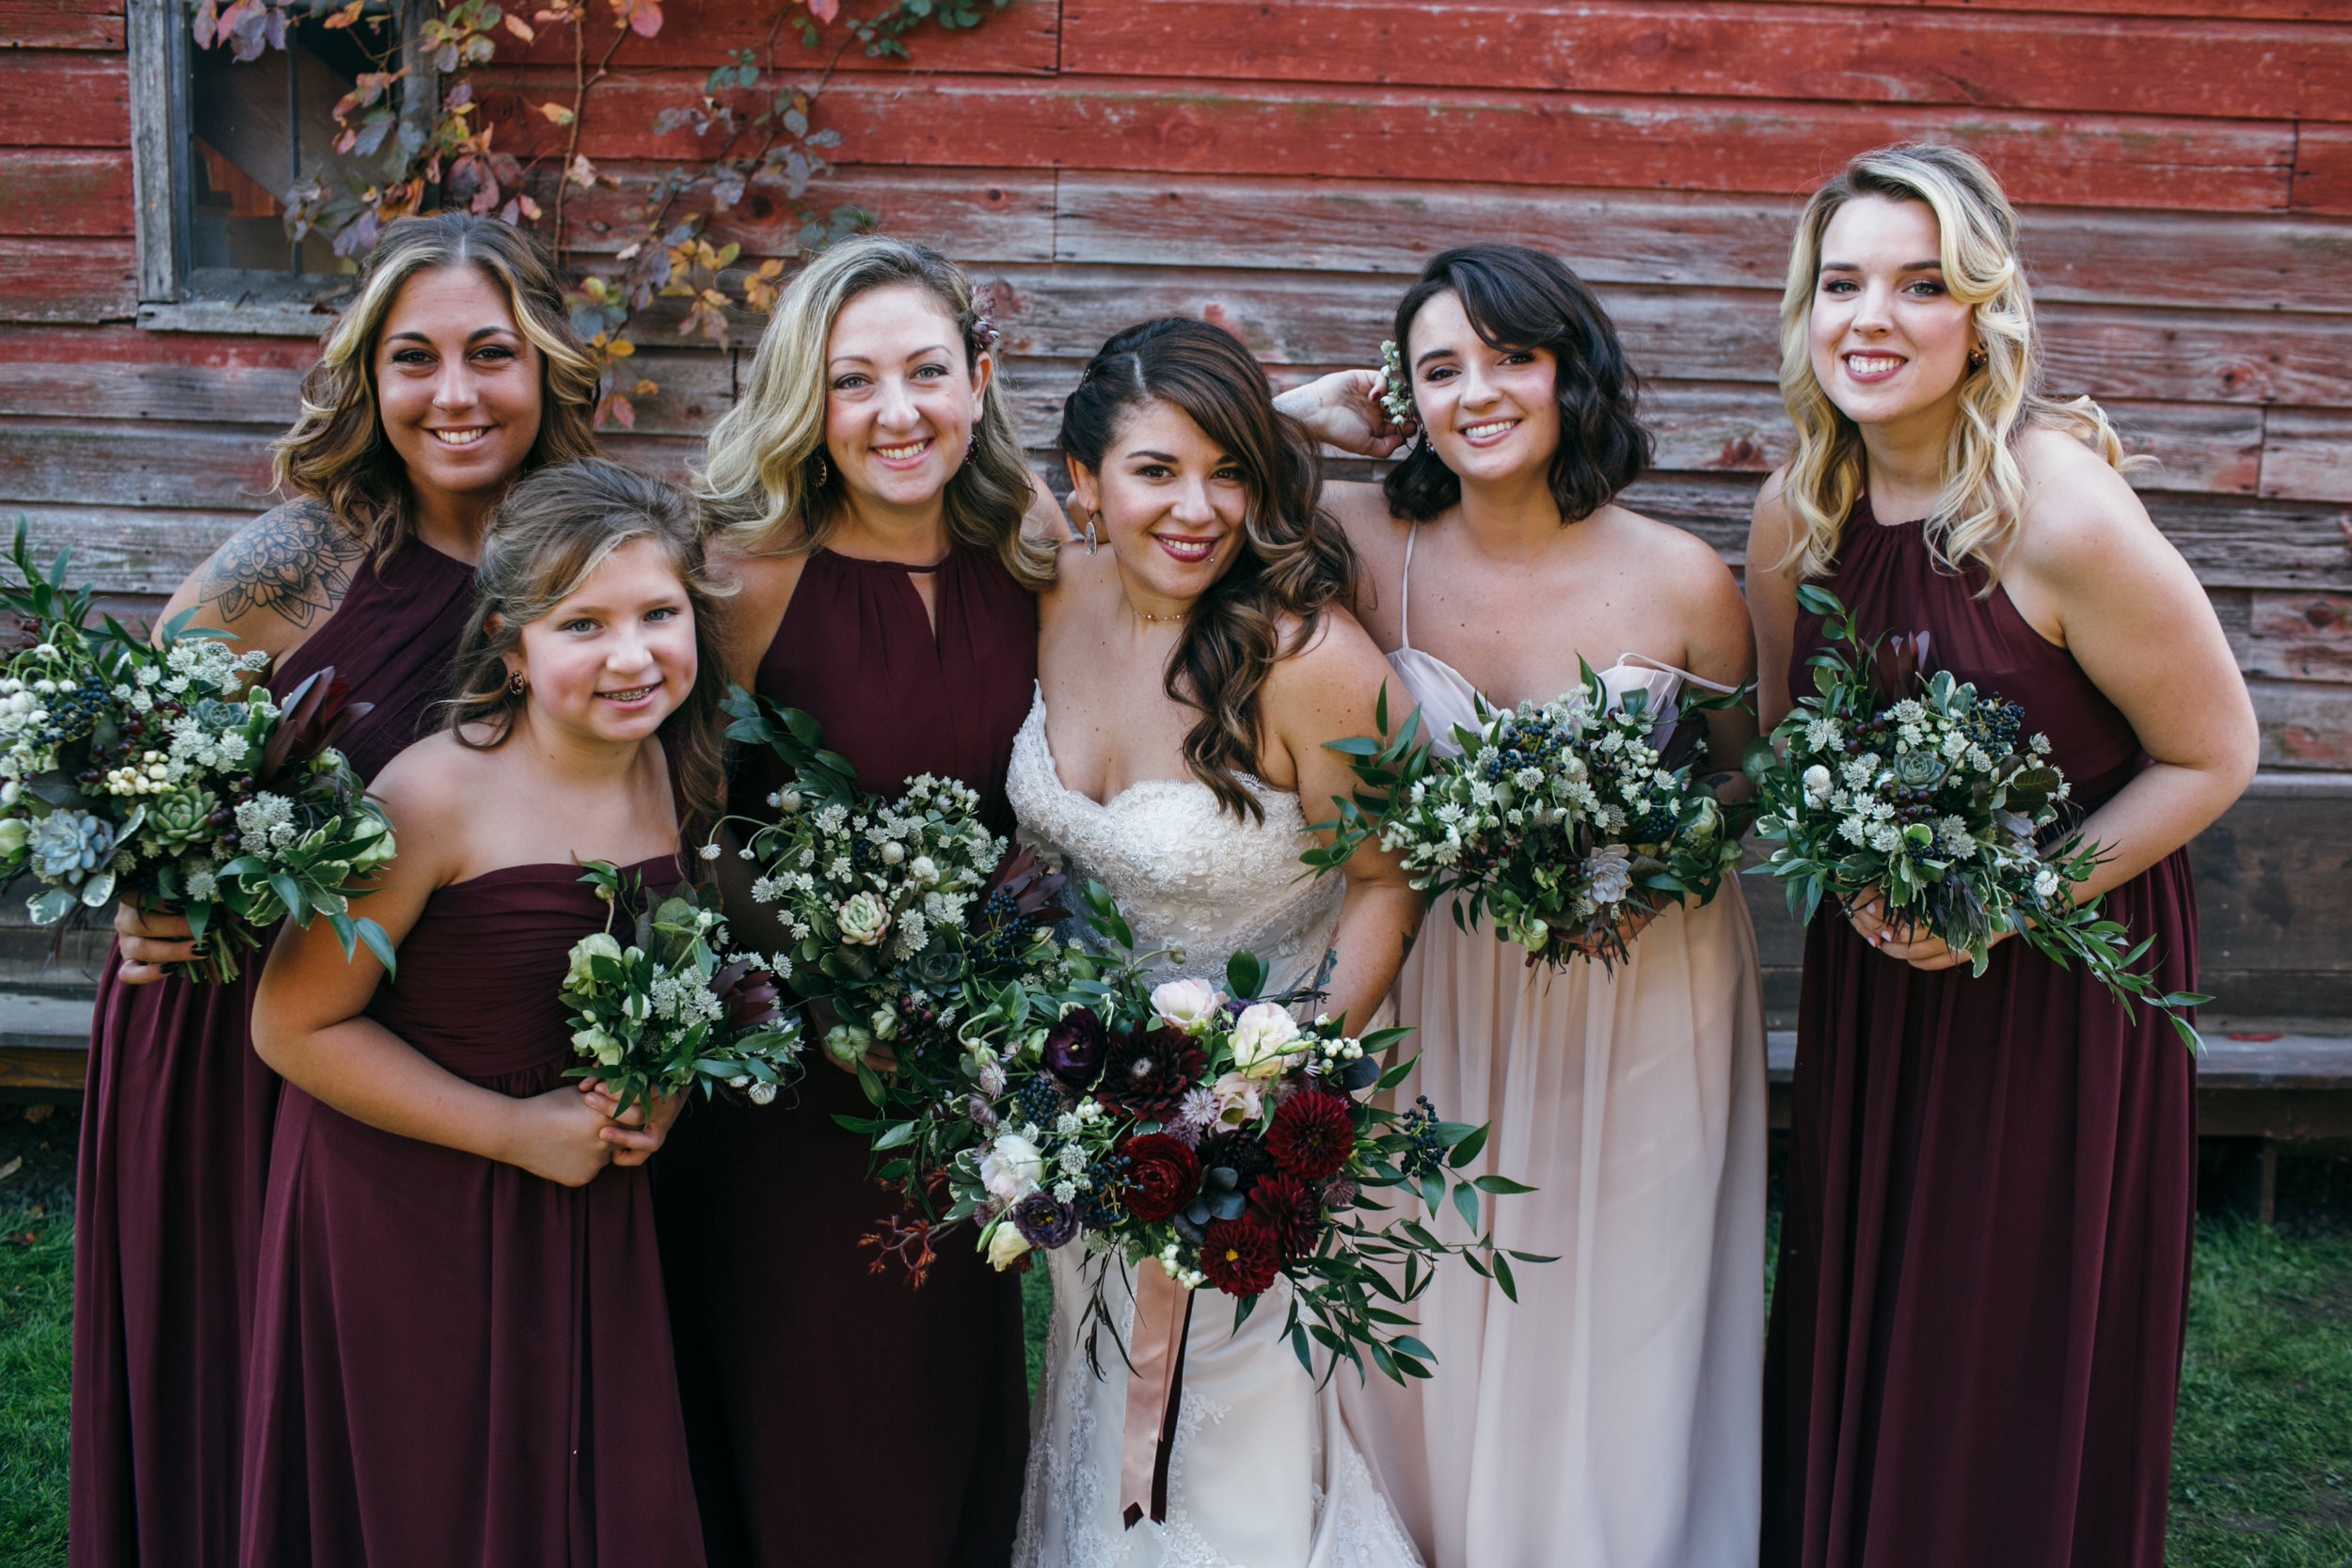 Coordinating the rest of the bridal party with the bride and groom doesn't always mean using the same flowers or colors. For this event, complimentary colors, reflective elements, and contrasting textures were carefully selected to keep the entire group in sync.    The bride's bouquet used ribbons that matched the color and texture of the dresses worn by her maid-of-honor and other bridesmaids, while their bouquets feature white flowers that reflected the bride's gown.